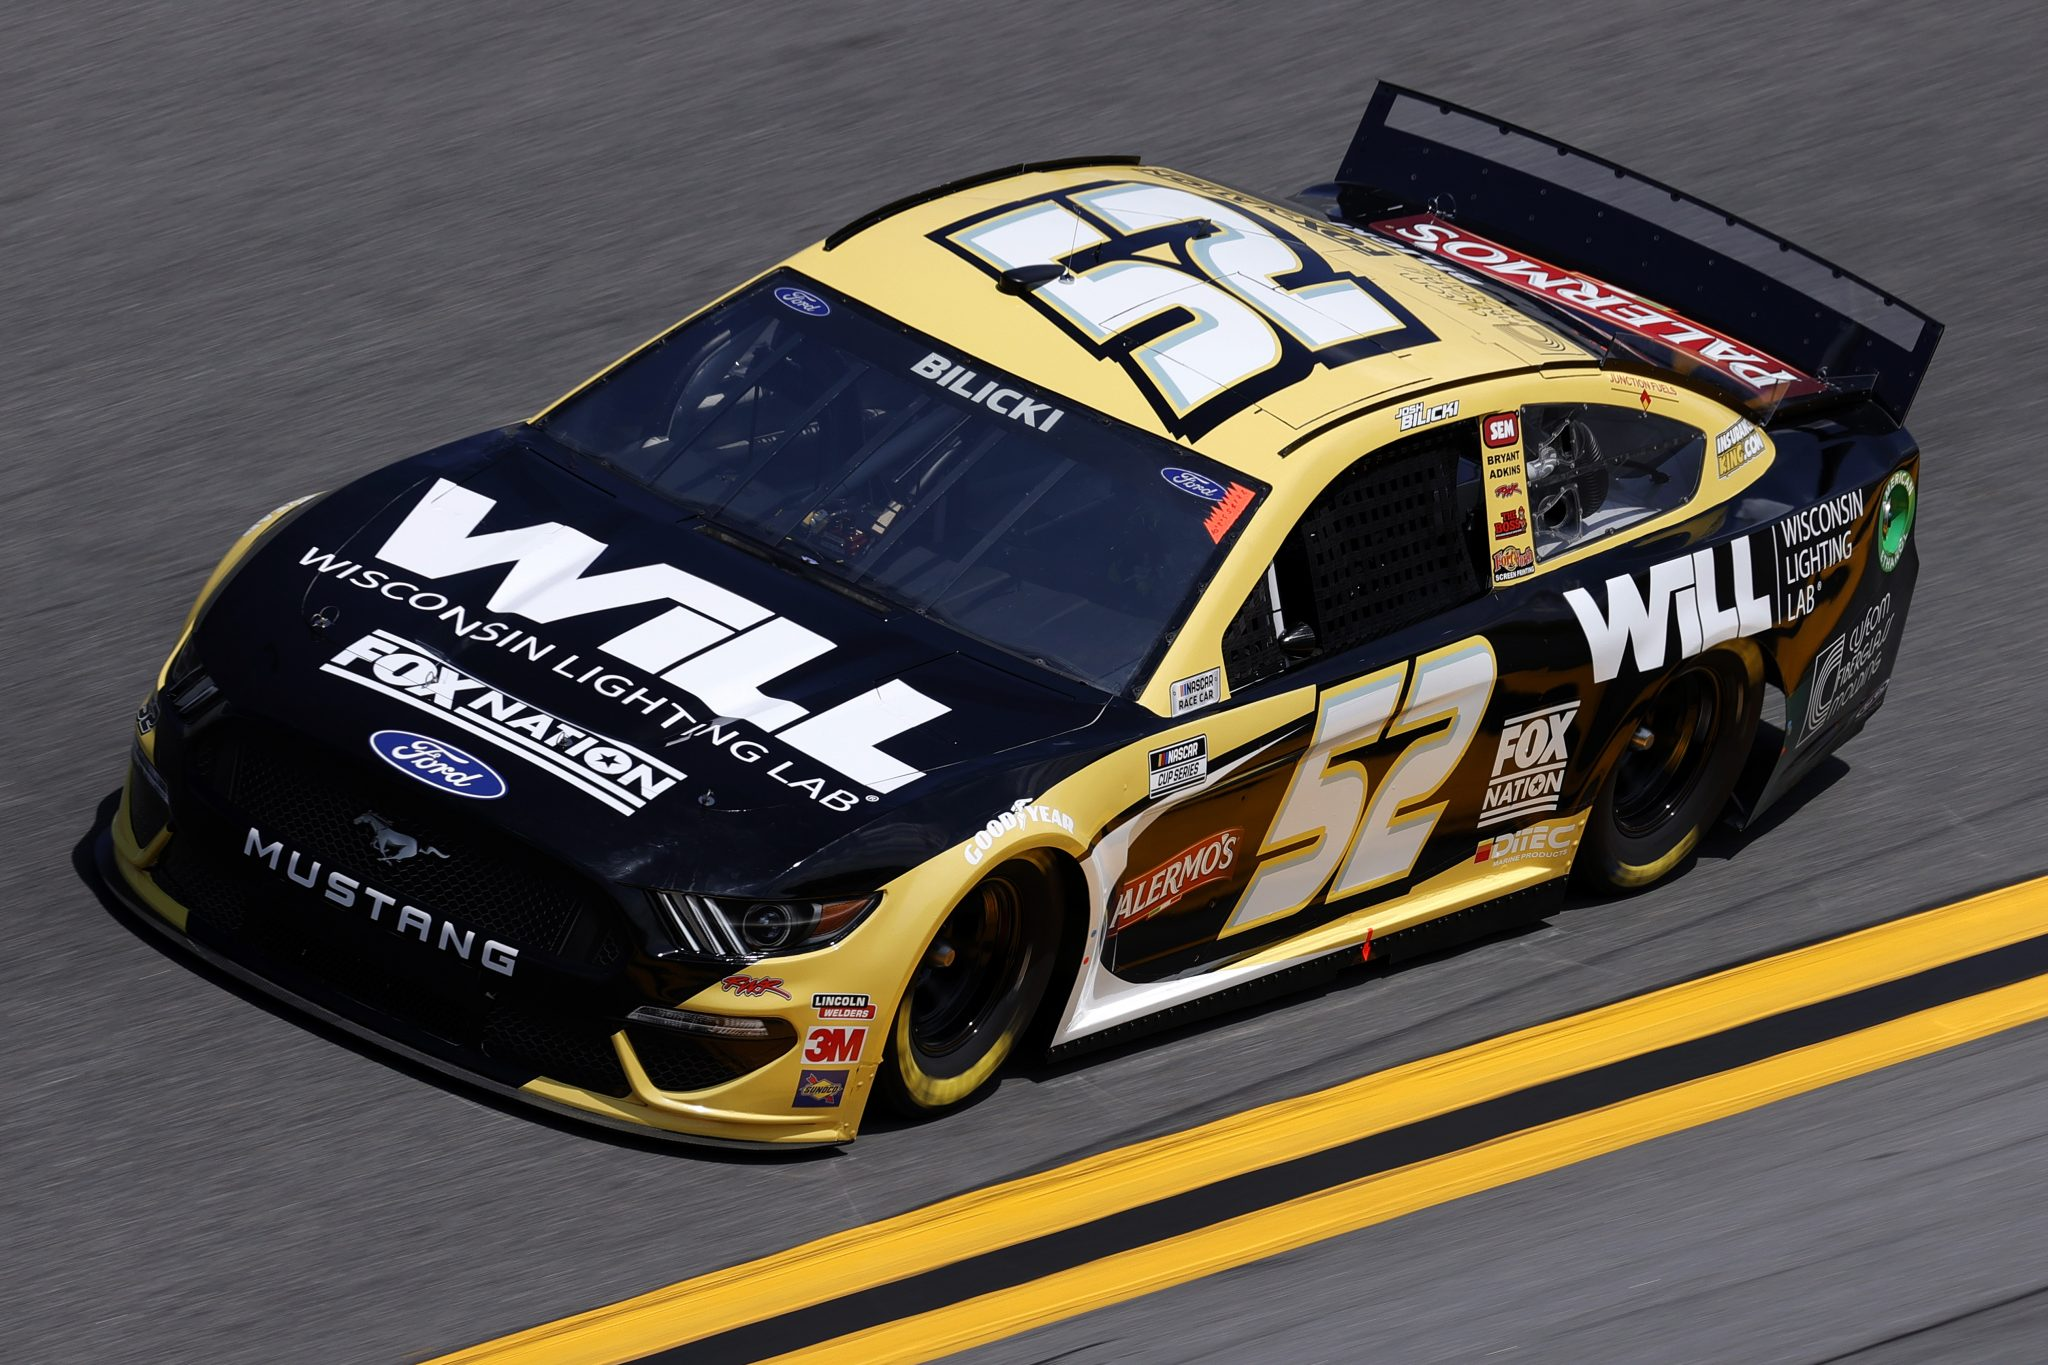 DAYTONA BEACH, FLORIDA - FEBRUARY 10: Josh Bilicki, driver of the #52 Wisconsin Lighting Lab Ford, drives during practice for the NASCAR Cup Series 63rd Annual Daytona 500 at Daytona International Speedway on February 10, 2021 in Daytona Beach, Florida. (Photo by Jared C. Tilton/Getty Images) | Getty Images